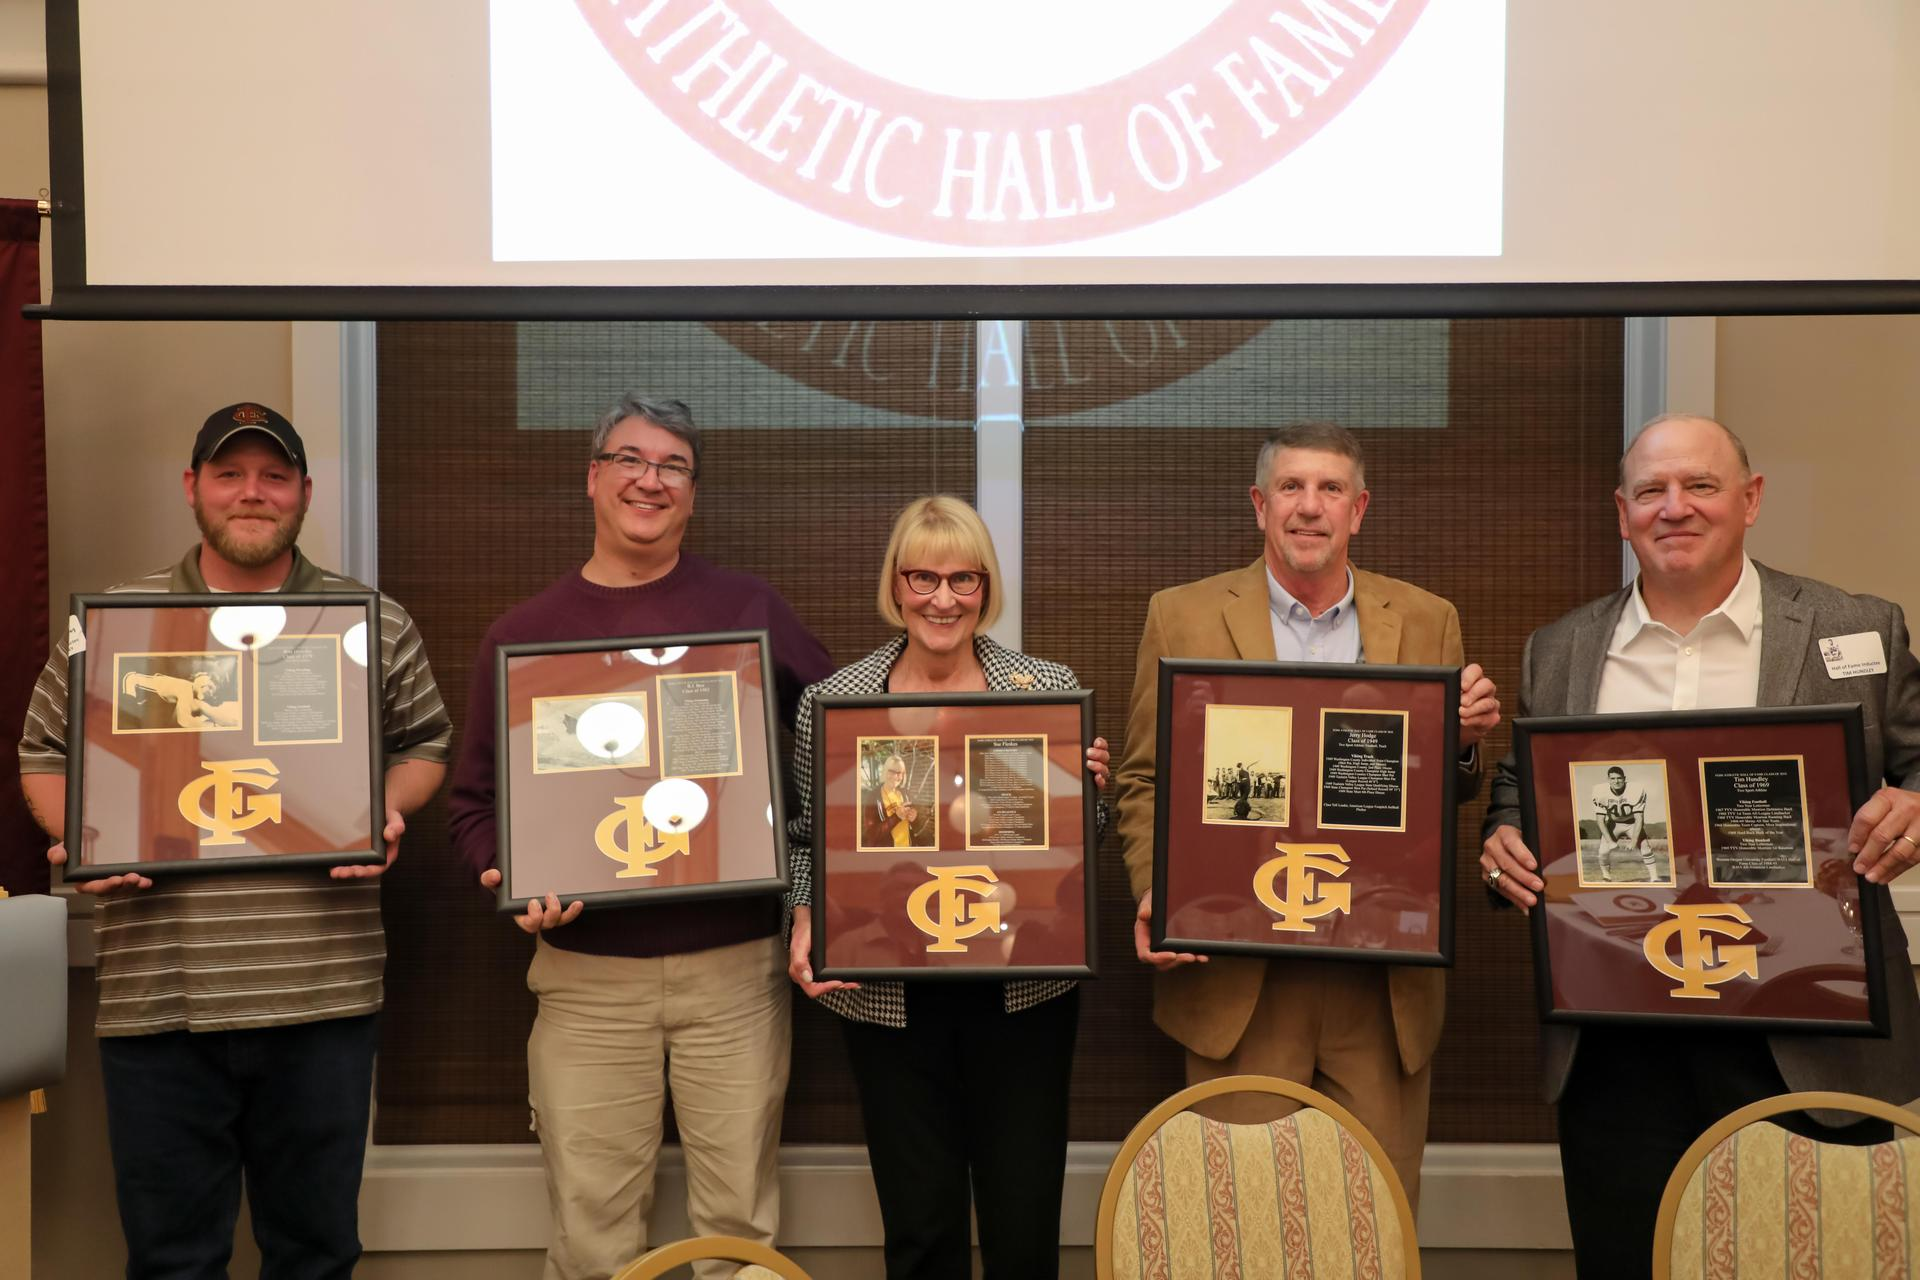 Hall of Fame Inductees holding award plaques